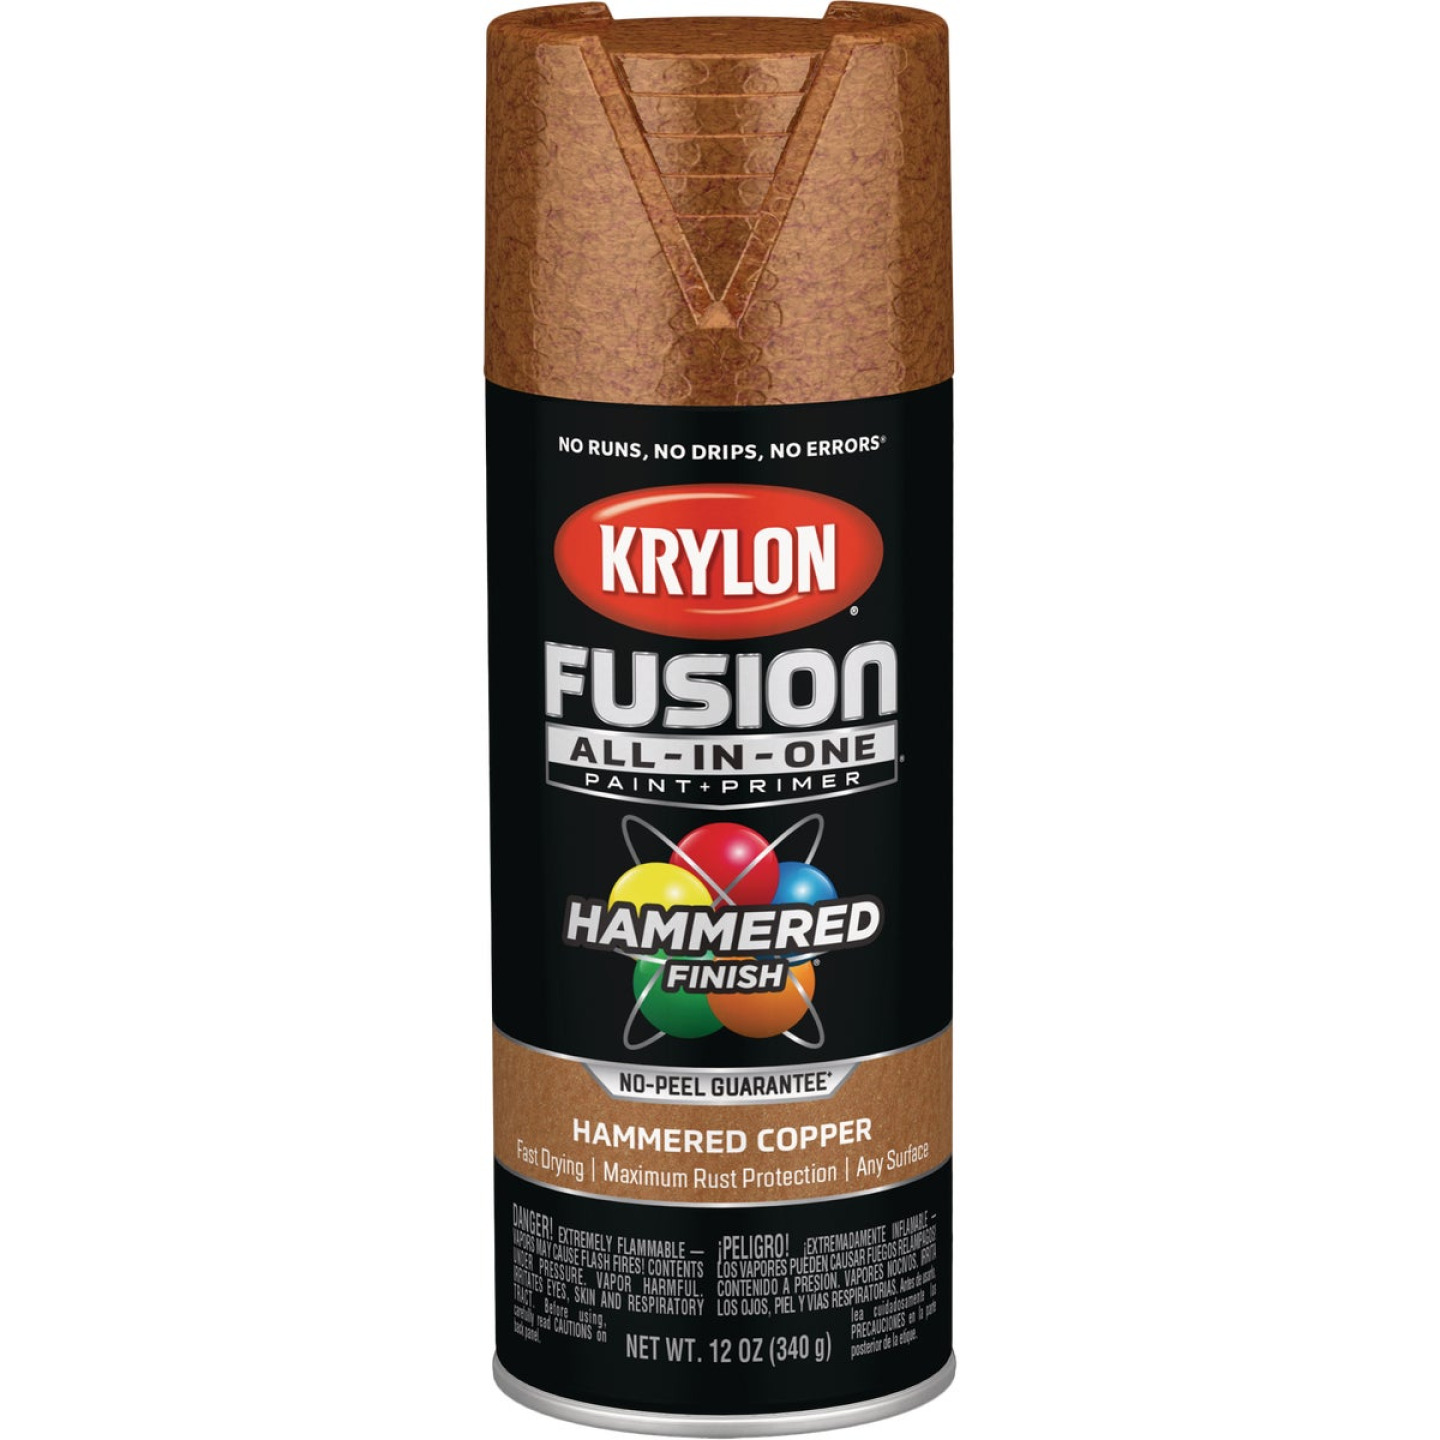 Krylon Fusion All-In-One Hammered Spray Paint & Primer, Copper Image 1